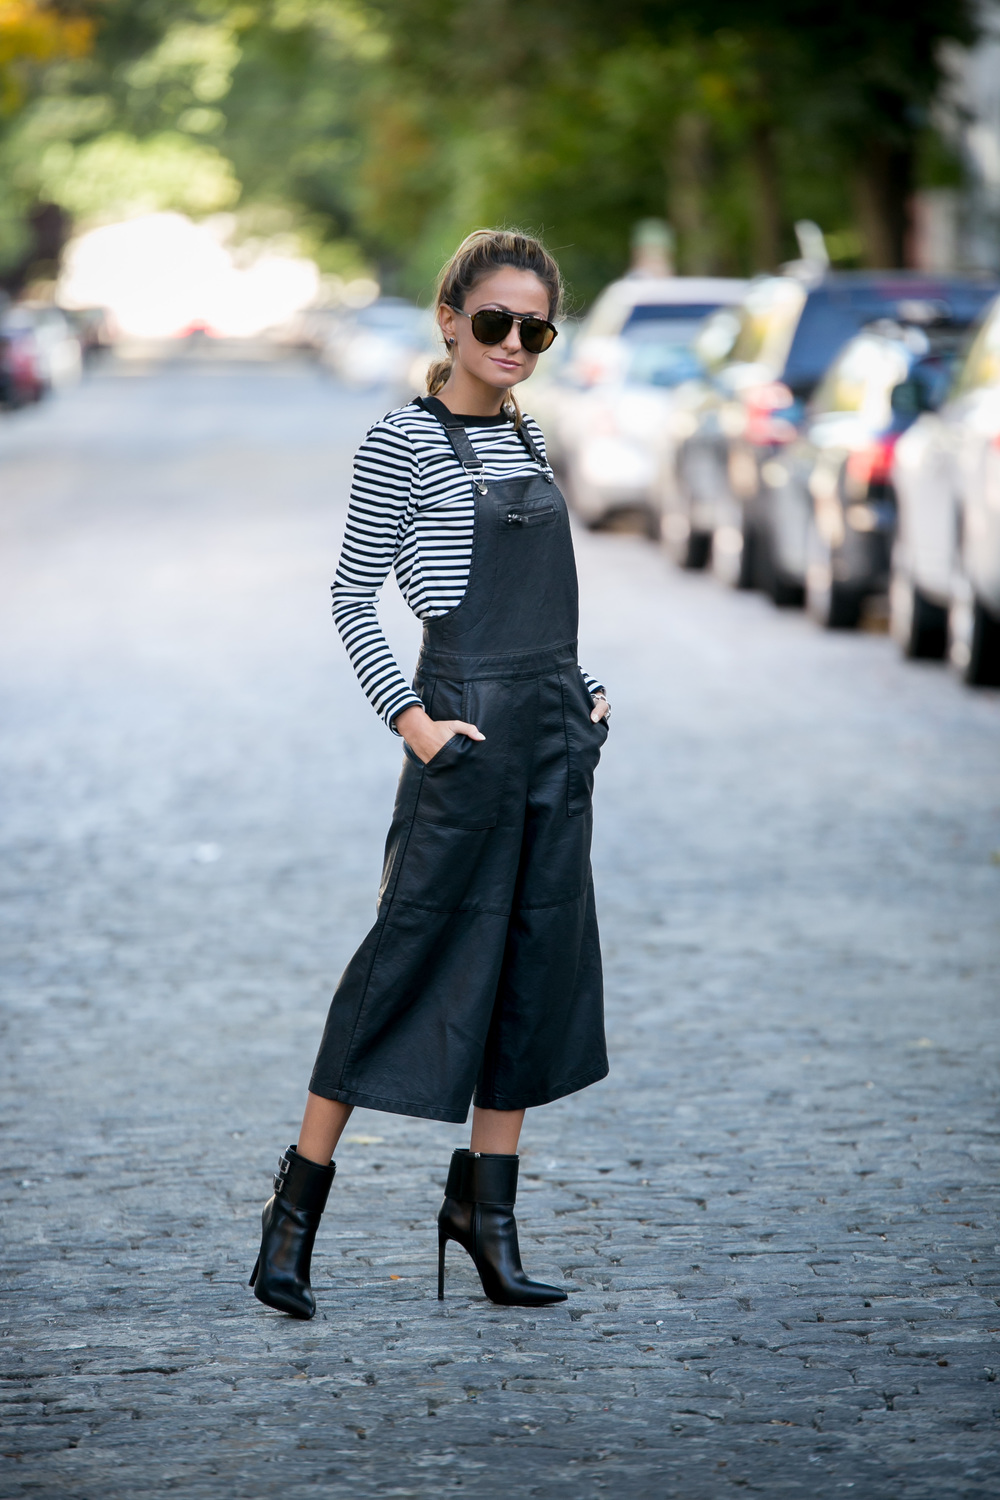 streetstyle blogger wearing striped long sleeve top and faux leather overalls from TopShop and Saint Laurent Boots